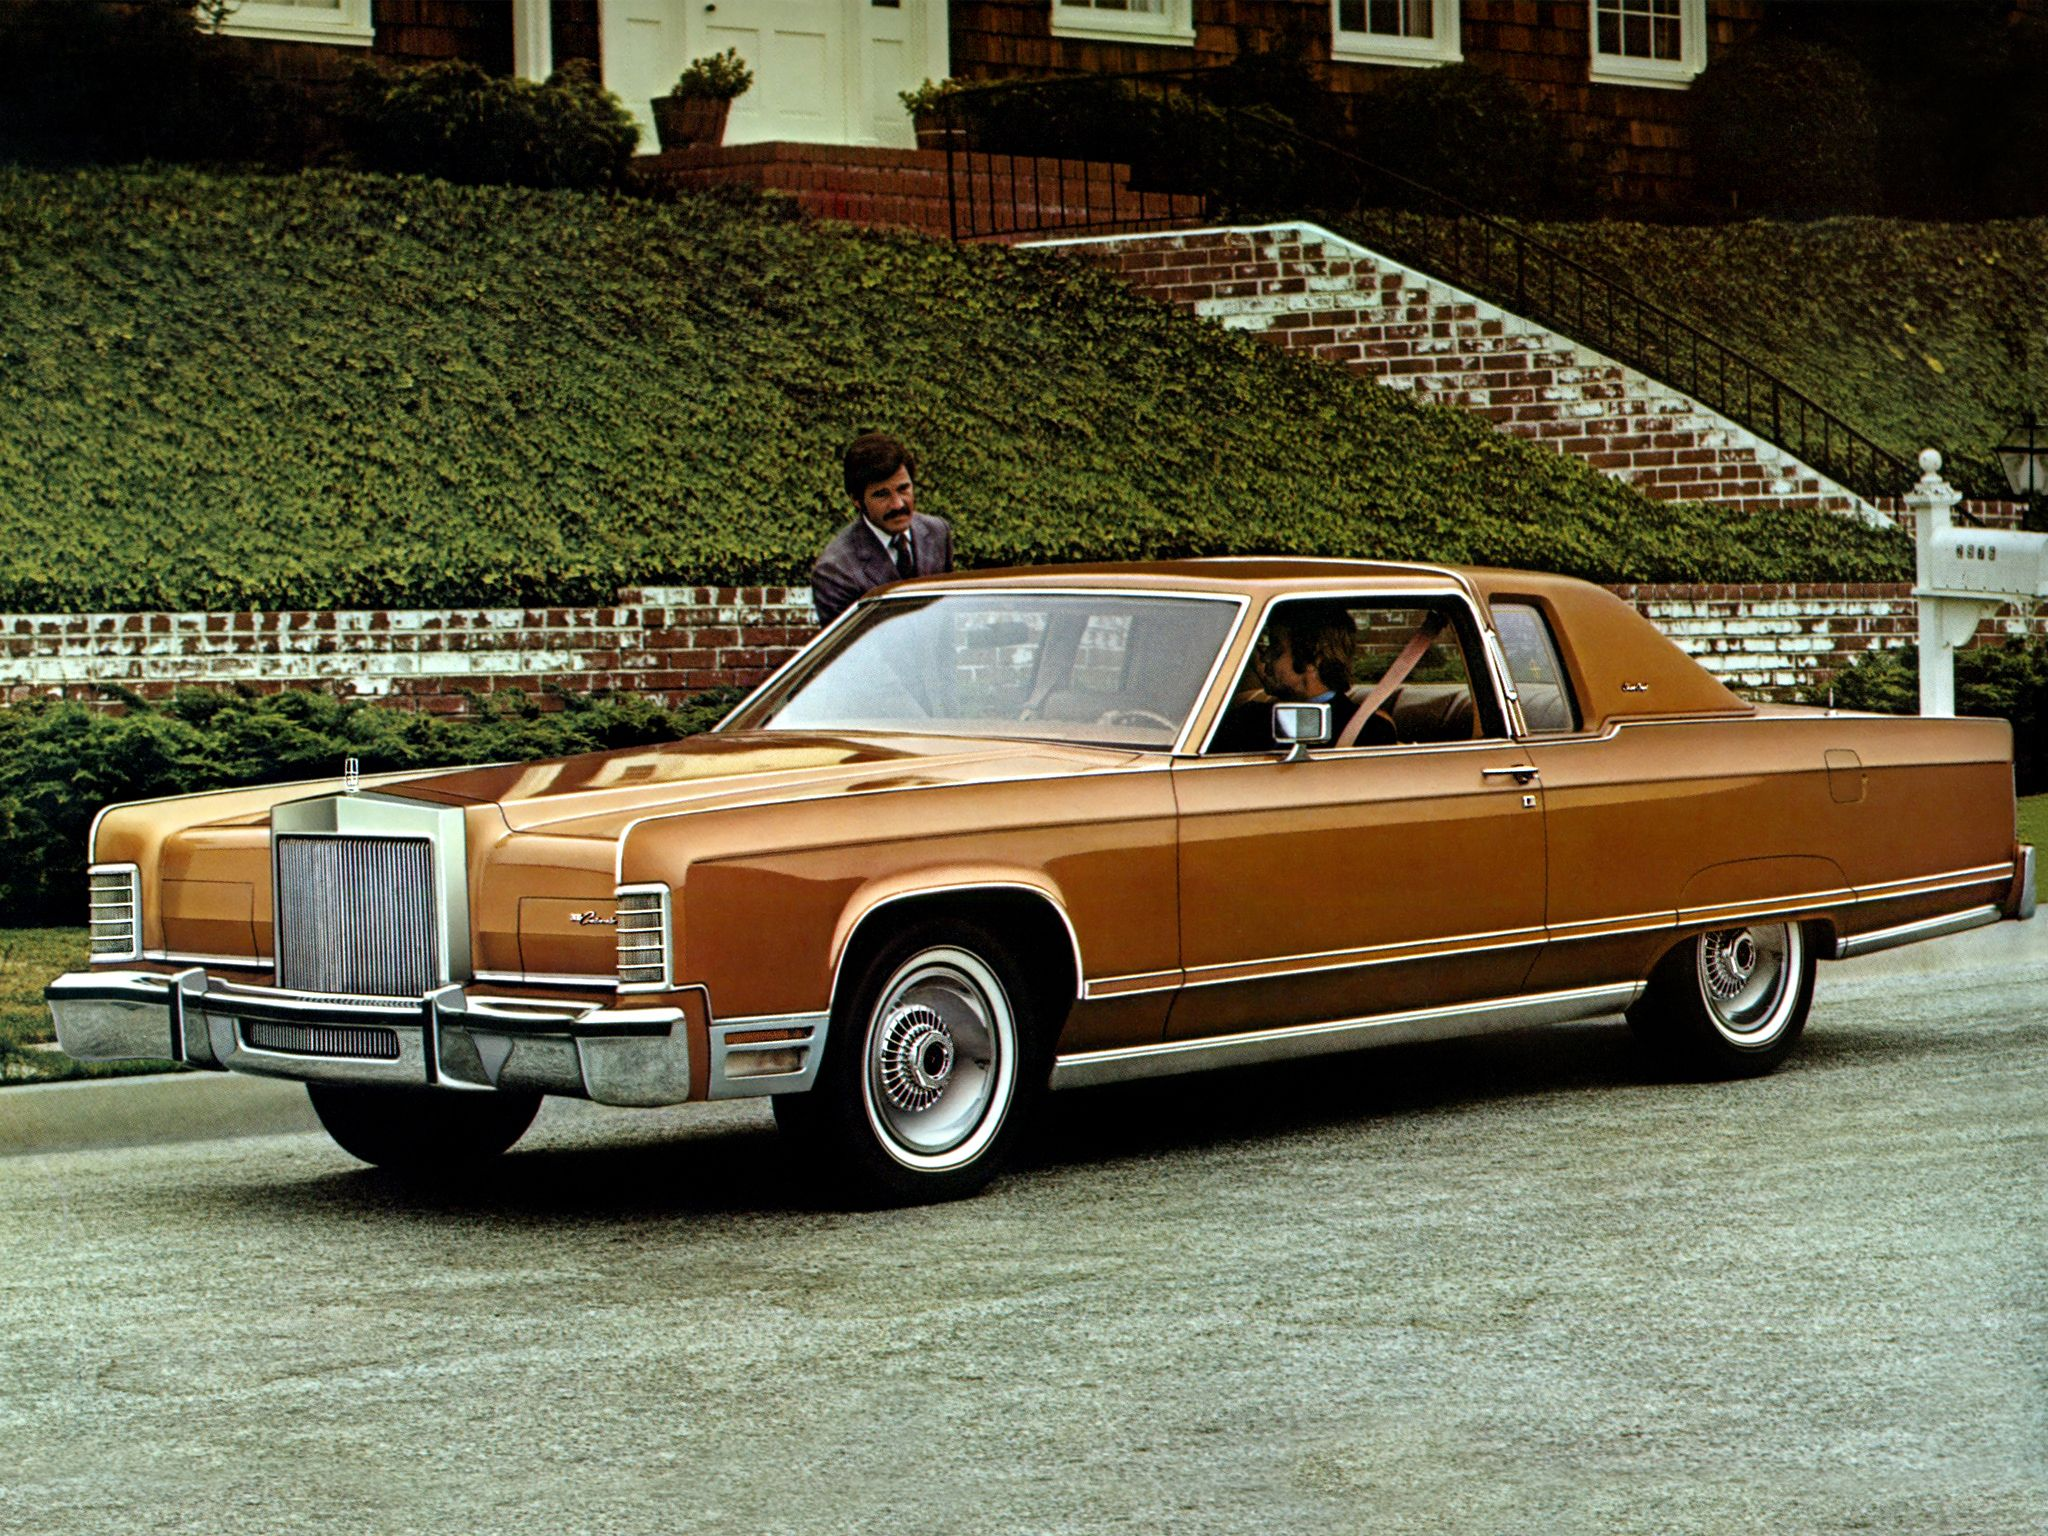 1977 Lincoln Continental Town Coupe The material which I can produce